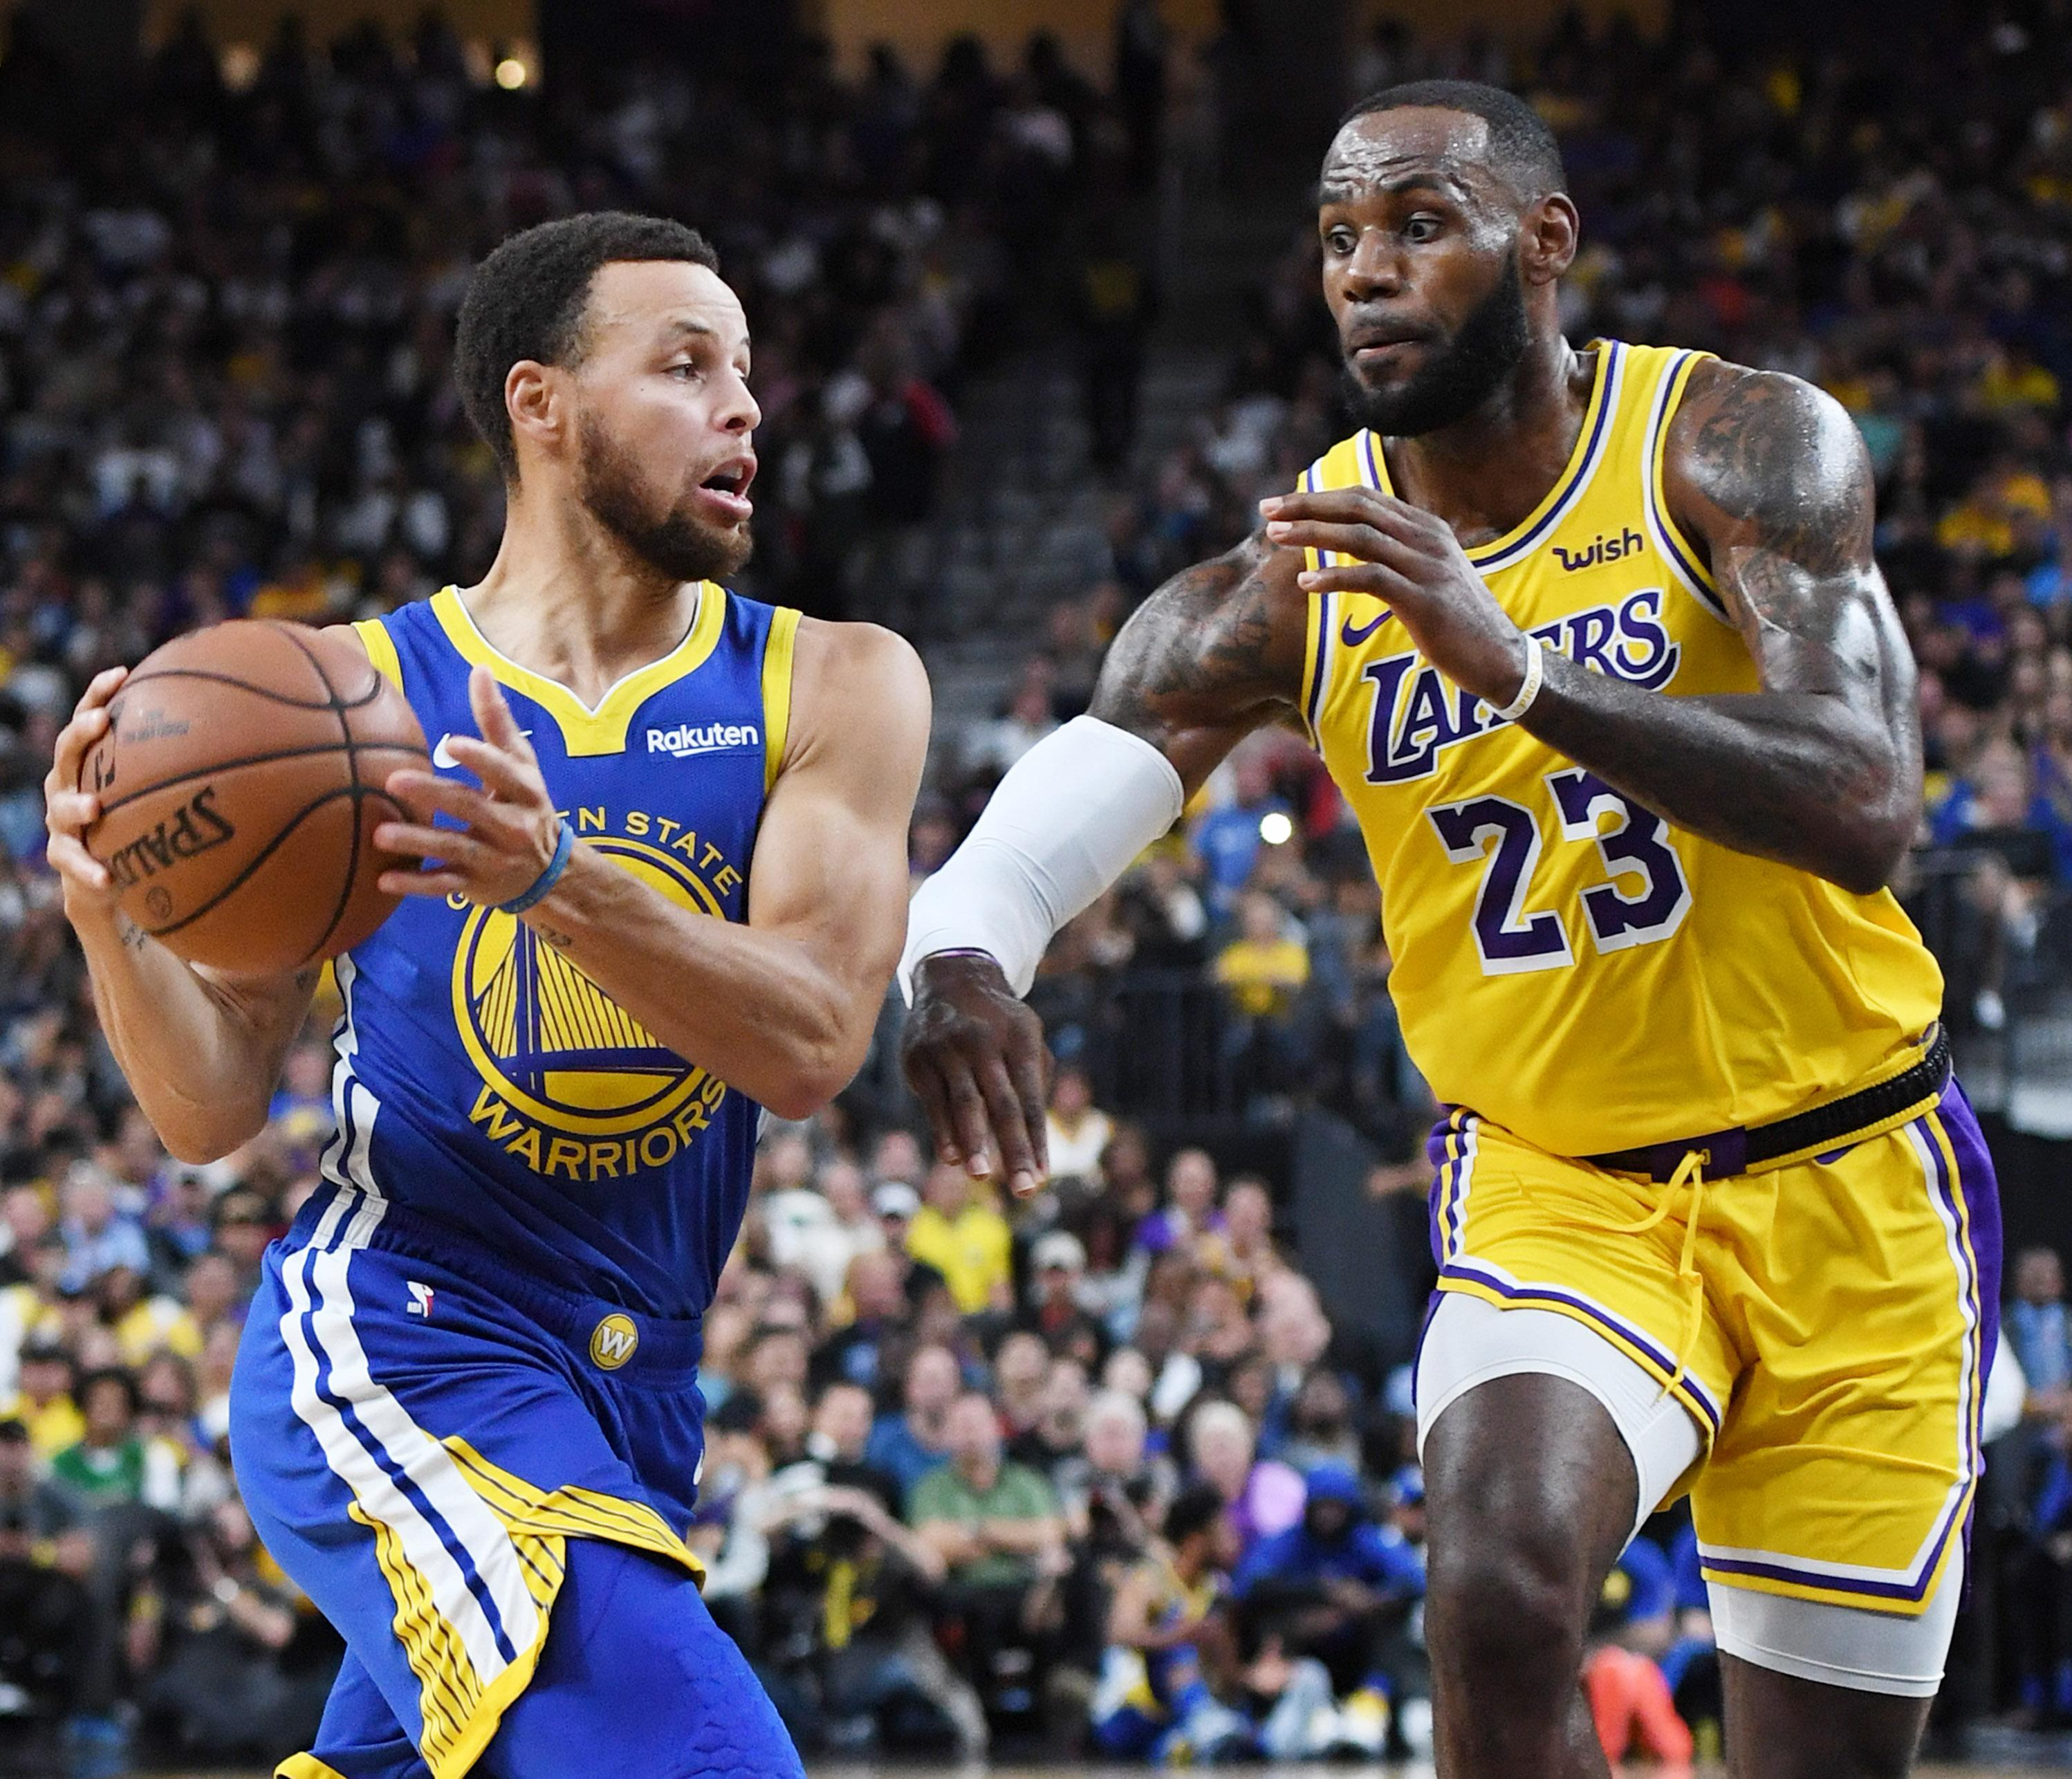 Nba Picks Nuggets And Lakers Game 7 Odds And Betting: Warriors Vs. Lakers: TV Times, Team News, Betting Odds And